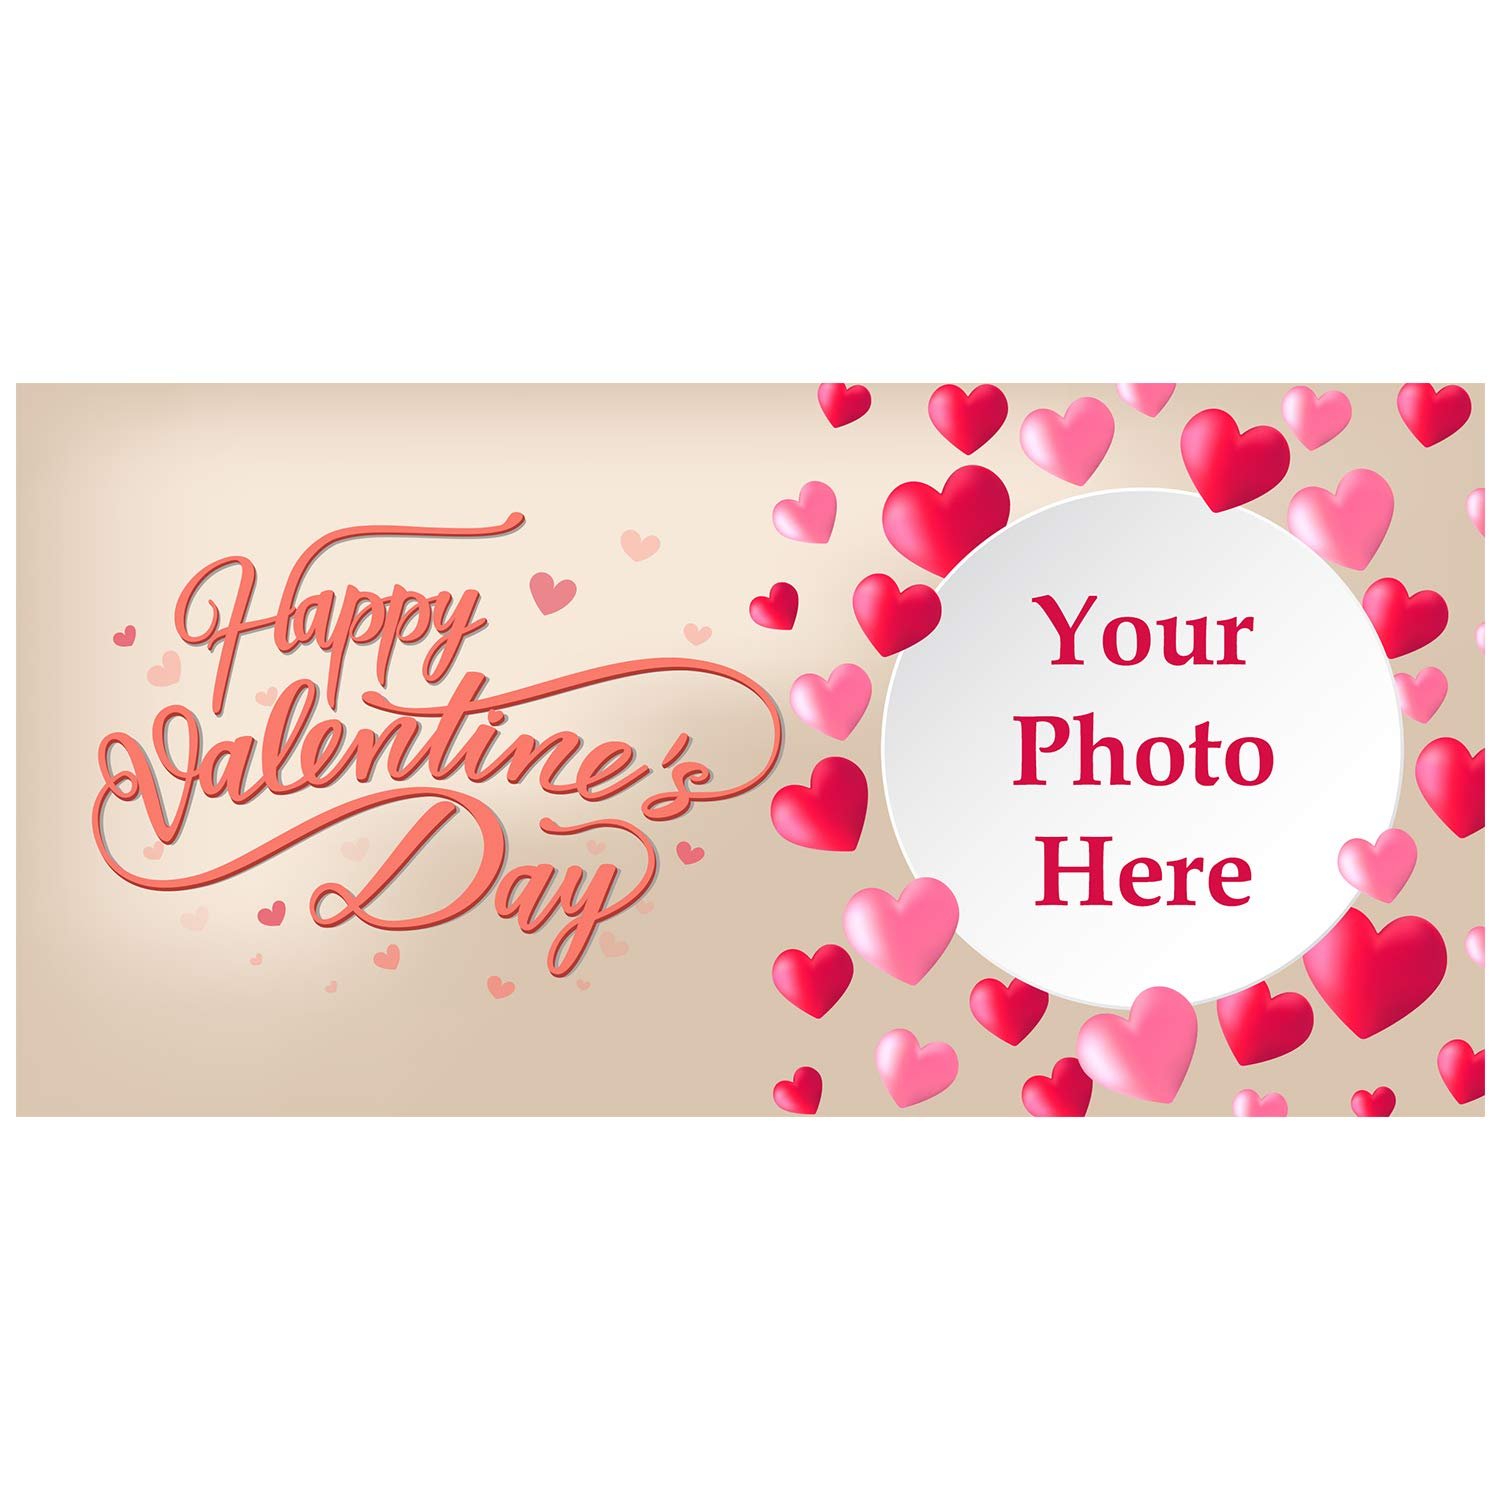 BANNER BUZZ MAKE IT VISIBLE Happy Valentine's Day Custom Magnetic Picture Bunch of Hearts Pocket Frame, Self-Adhesive Pocket Photo Magnets for Refrigerator, Valentine Day Gifts & More (12'' X 24'')